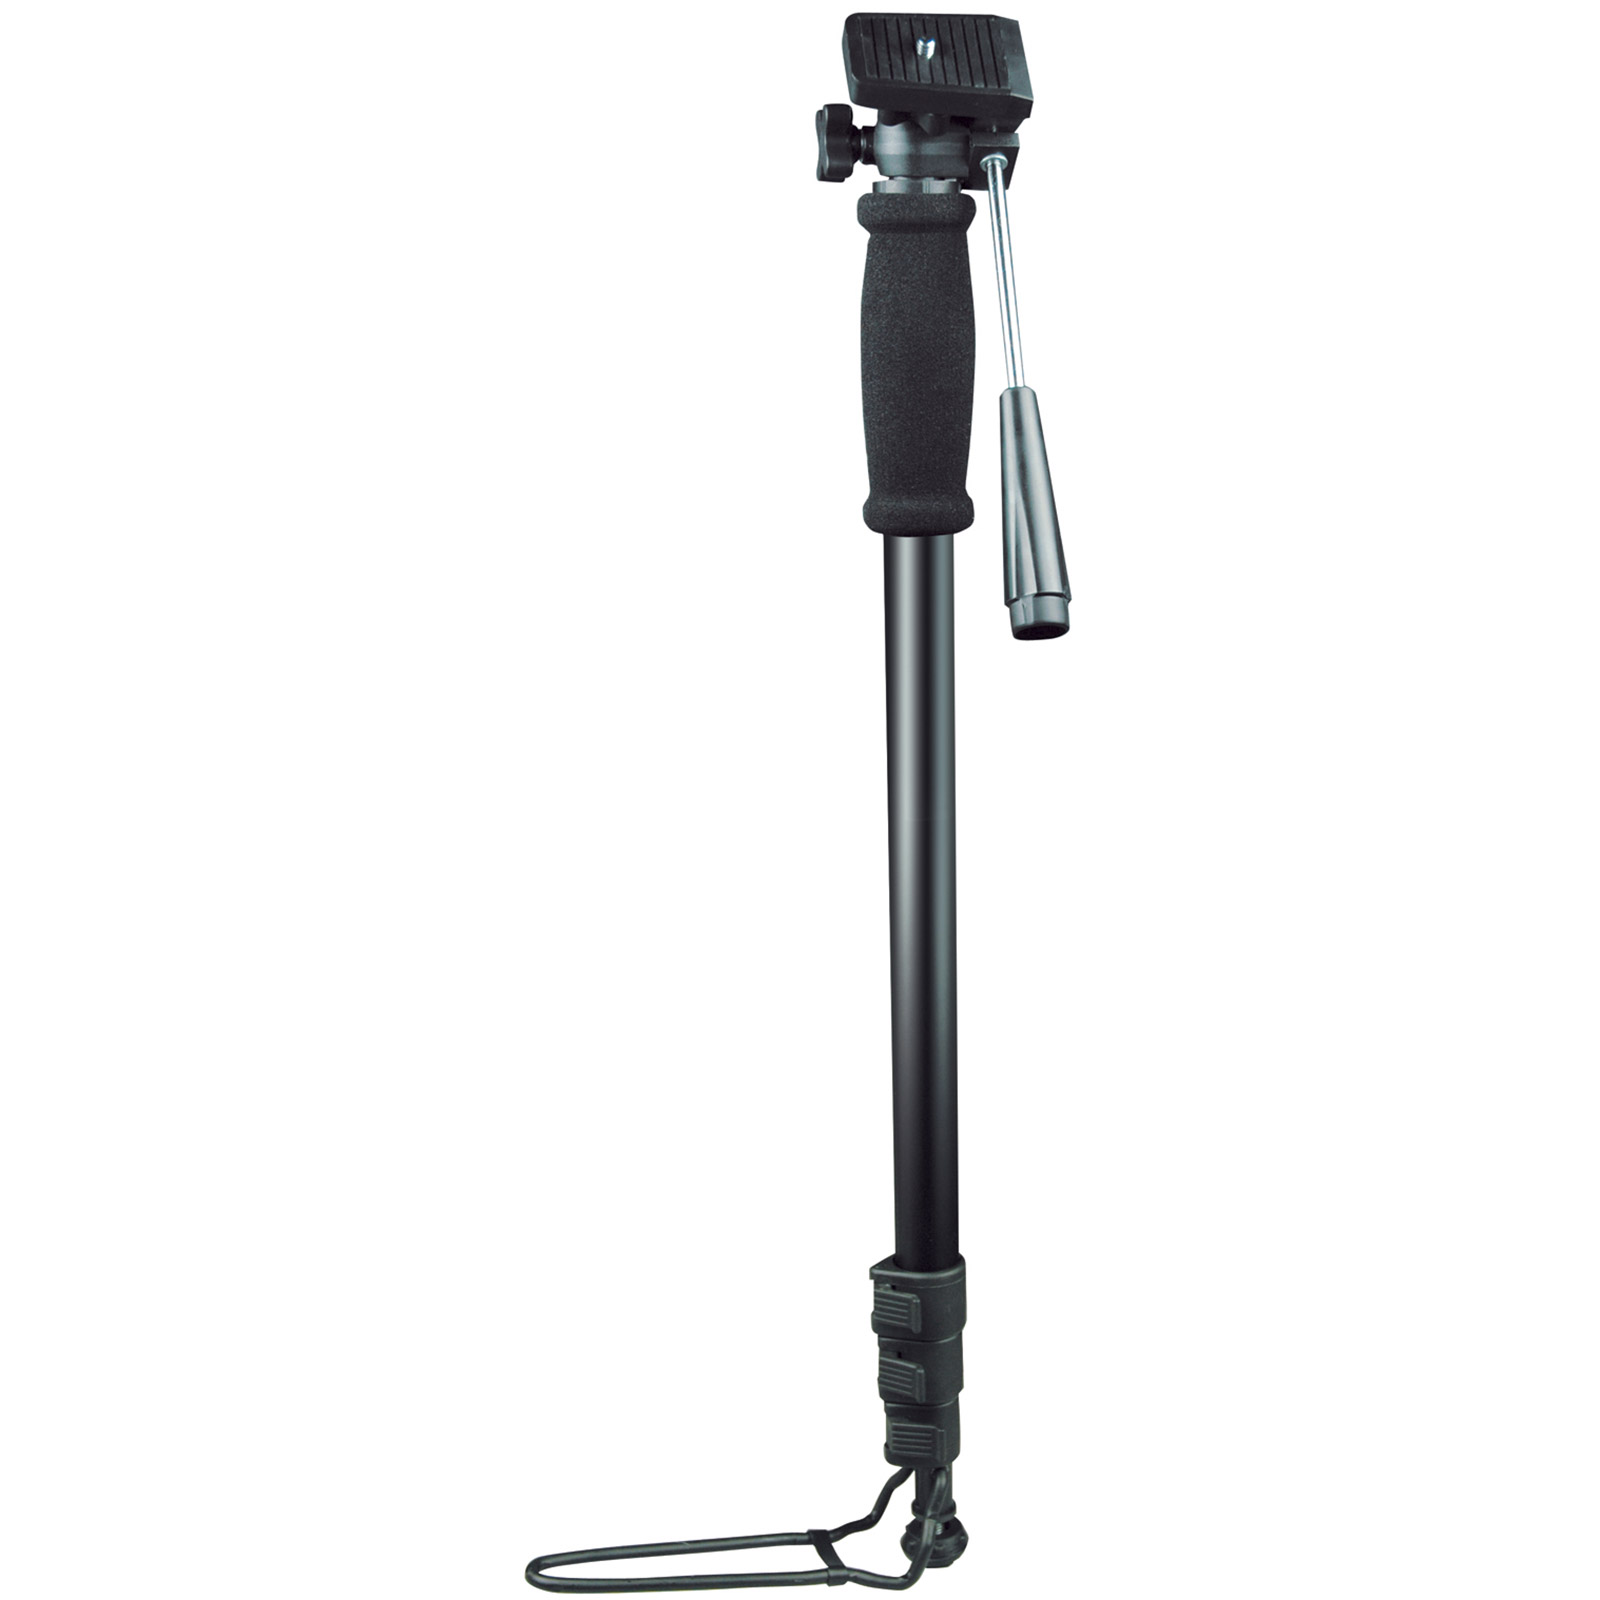 Universal DSLR Digital Camera Monopod Pole Stand with Tilt Head - Extendable